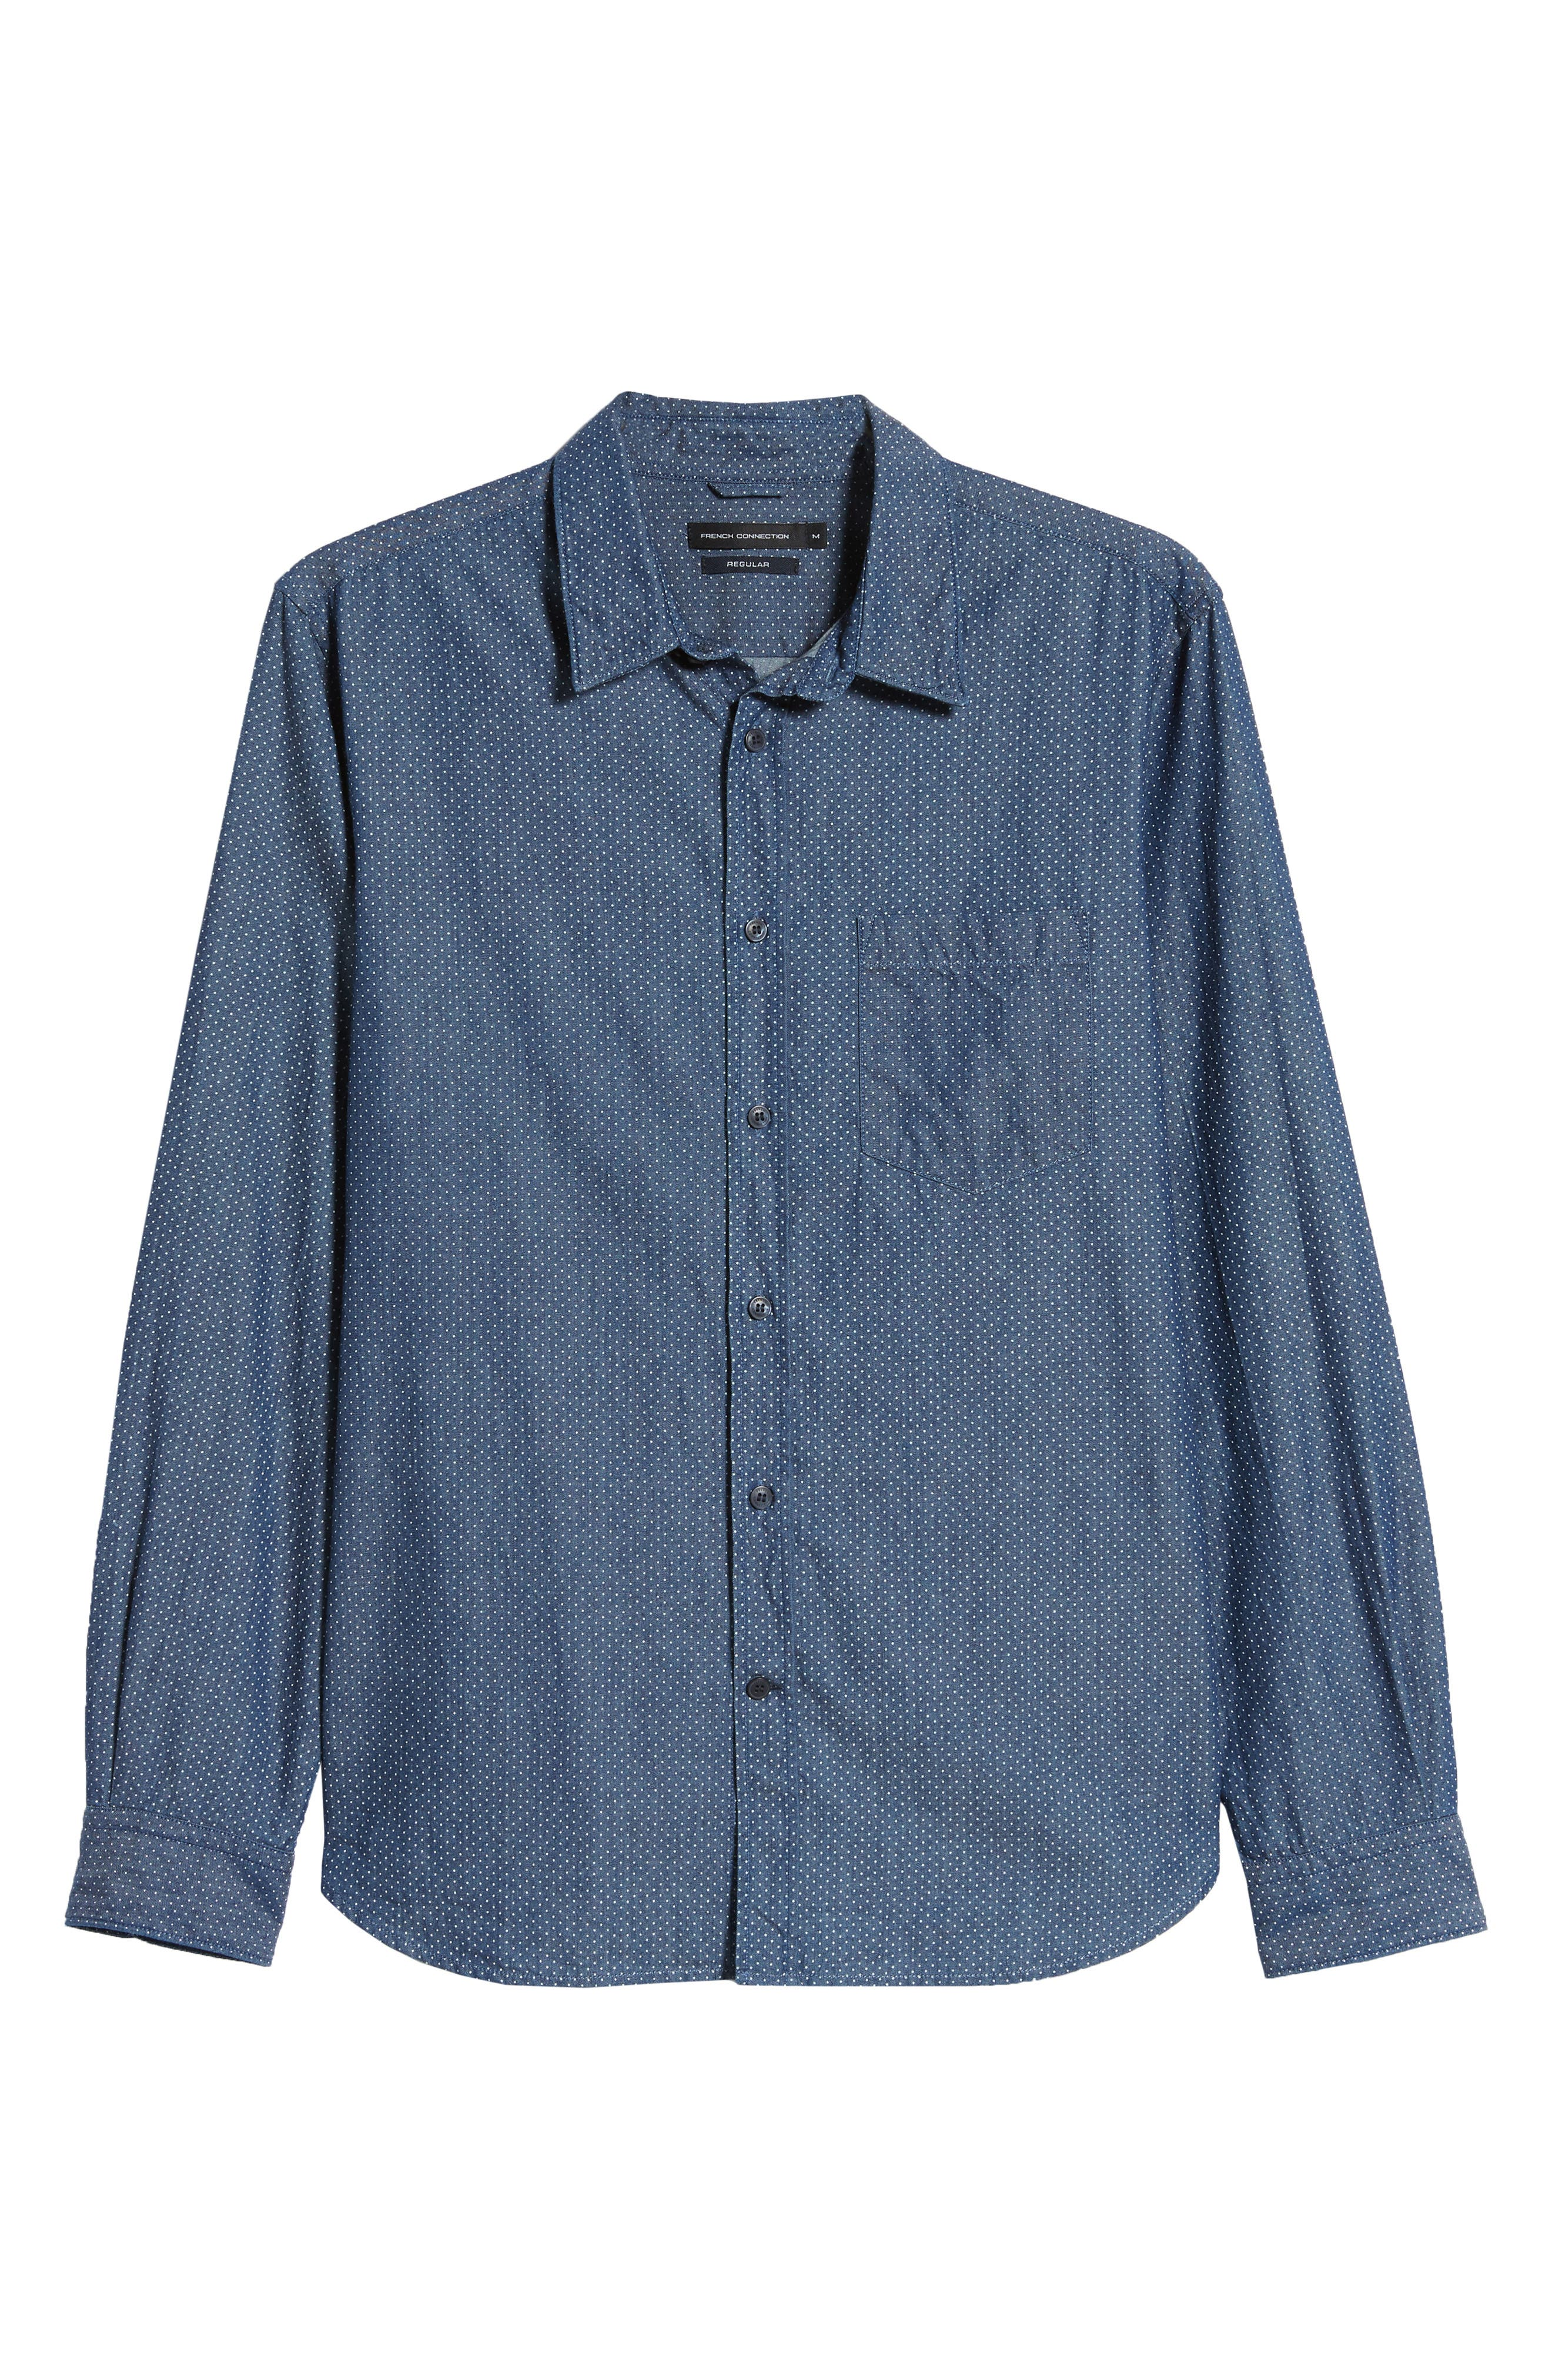 Dotted Regular Fit Chambray Shirt,                             Alternate thumbnail 5, color,                             CHAMBRAY MULTI